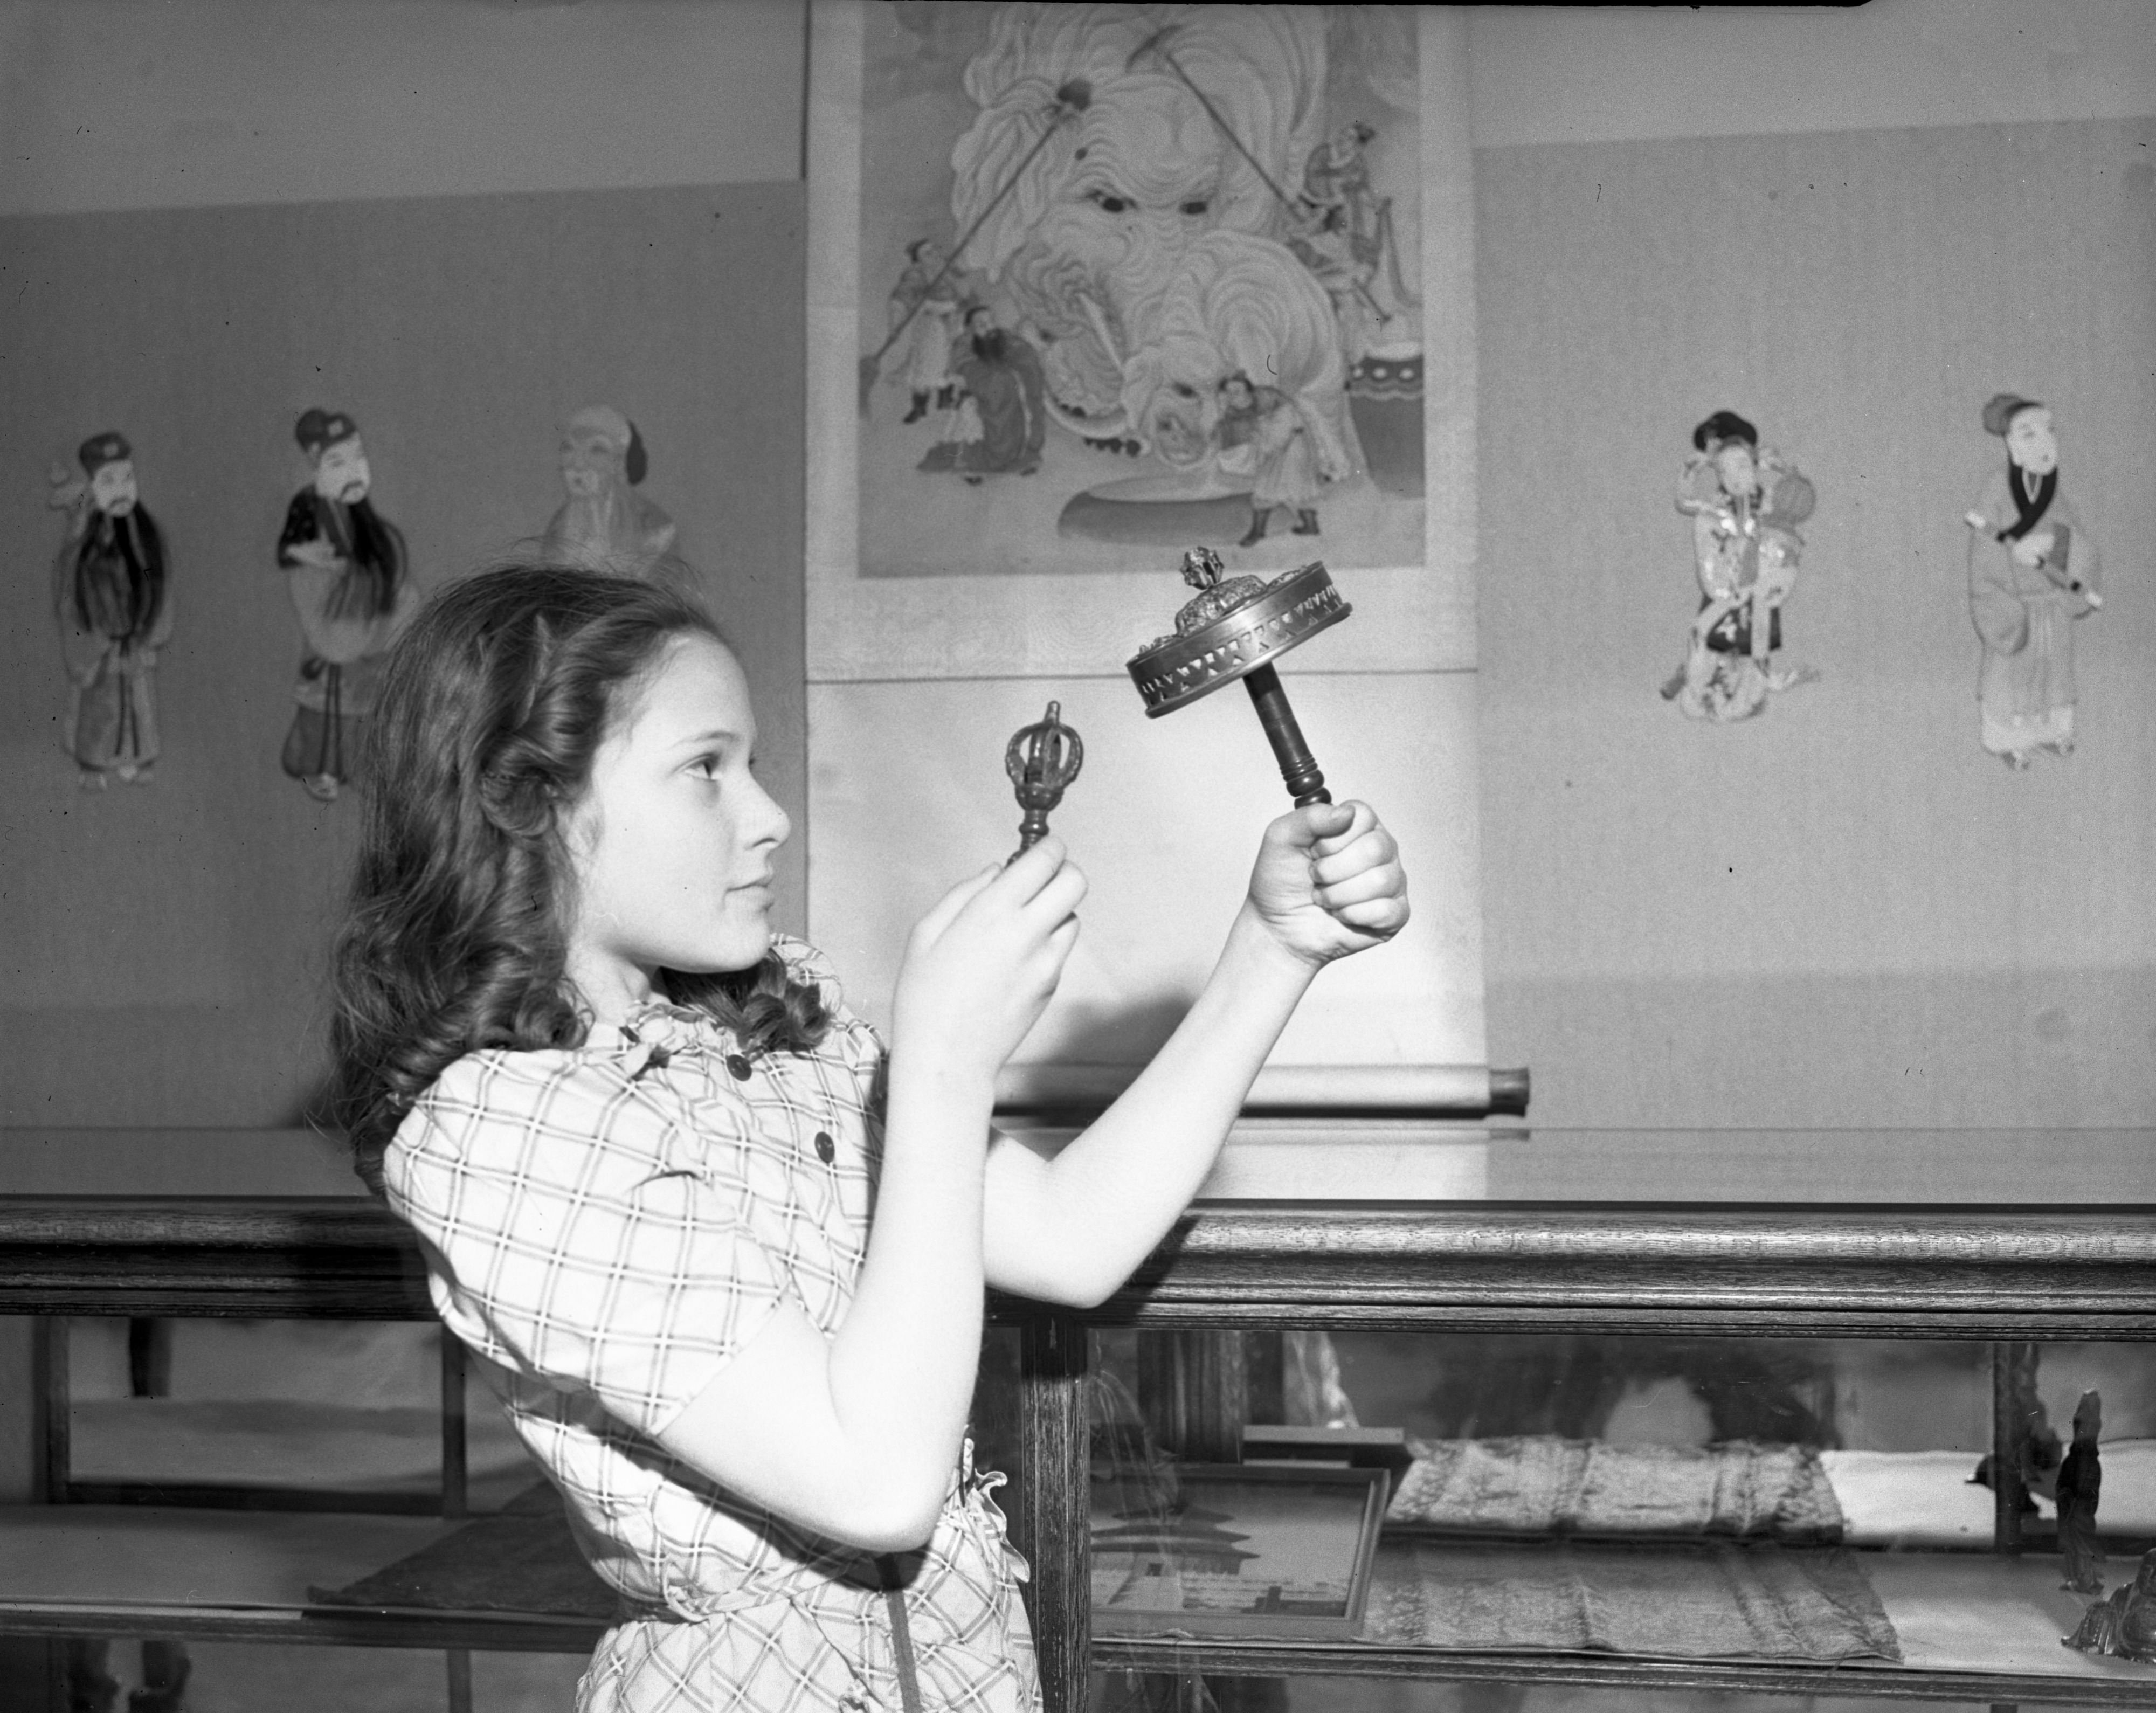 Eileen Westfall with a Tibetan Prayer Wheel and Thunderbolt at the Children's Museum, 944 Wall St, February 1941 image